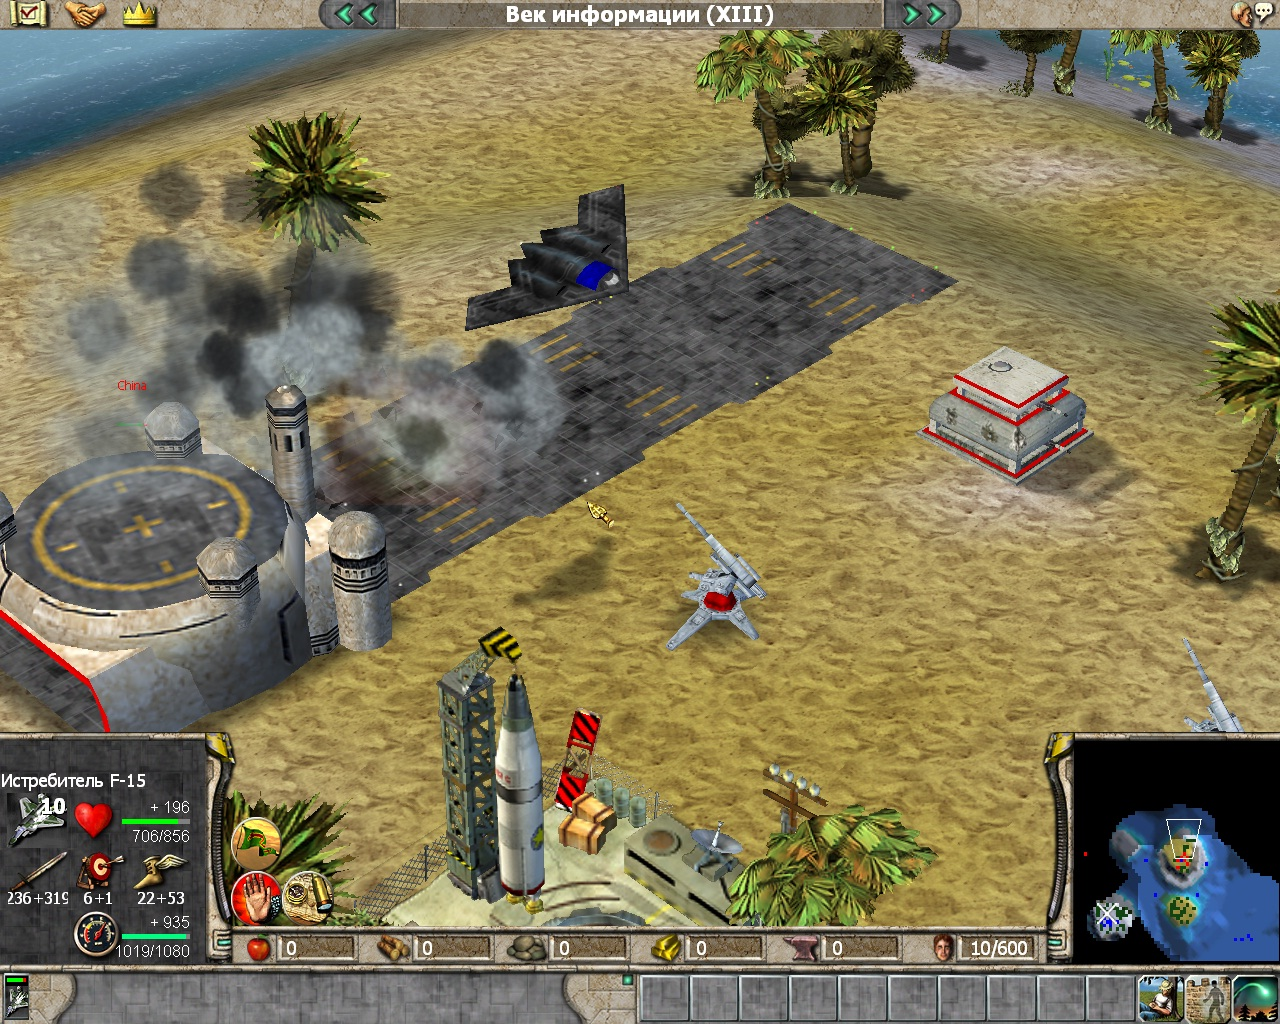 Pacific war image - Empire Earth: Day of War mod for Empire